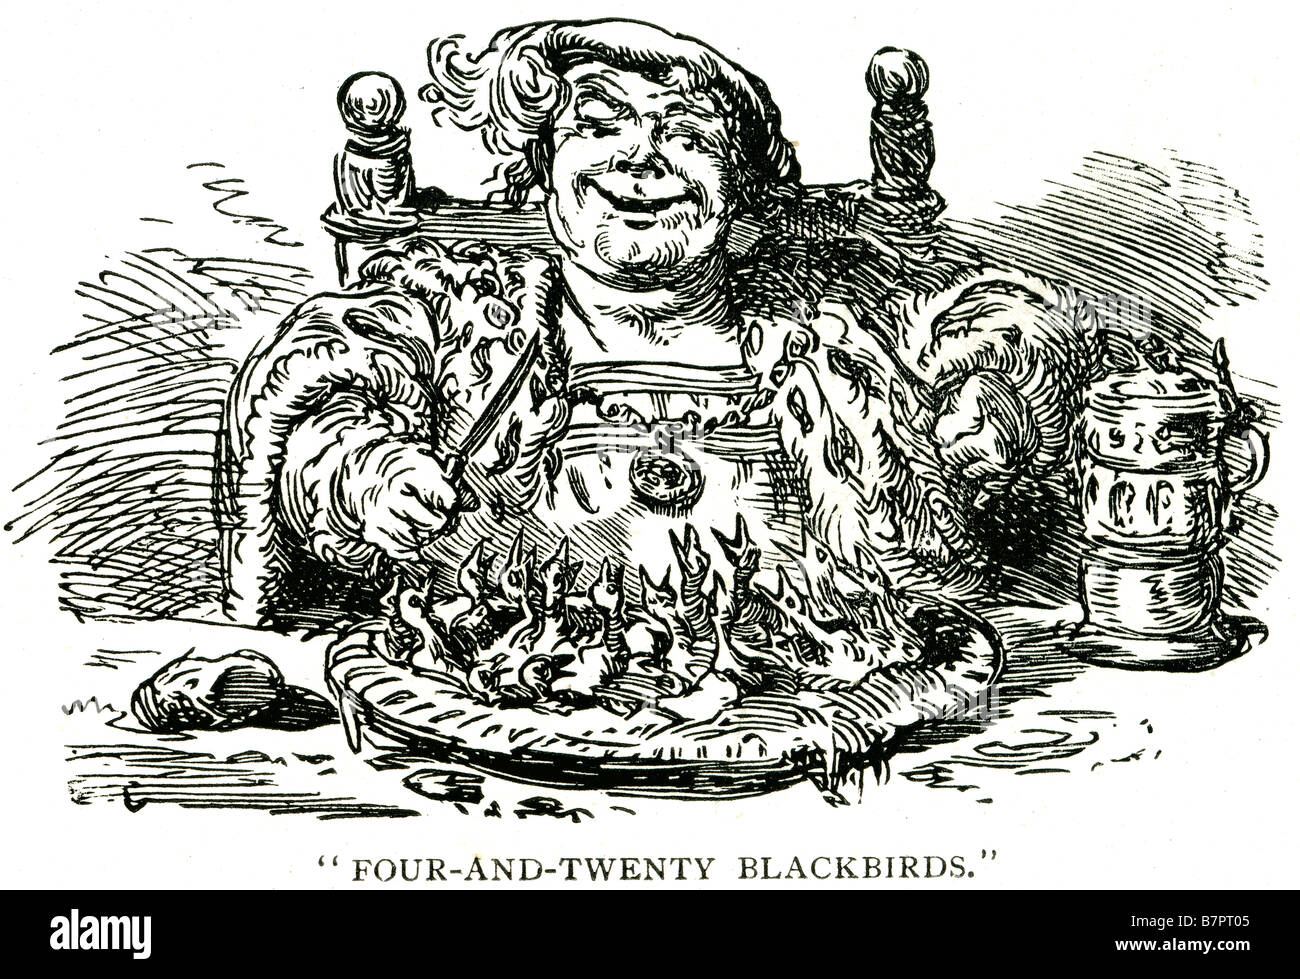 Nursery Rhyme Four-and-Twenty Blackbirds pie chick eating Sing a Song of Sixpence is a well known English nursery - Stock Image